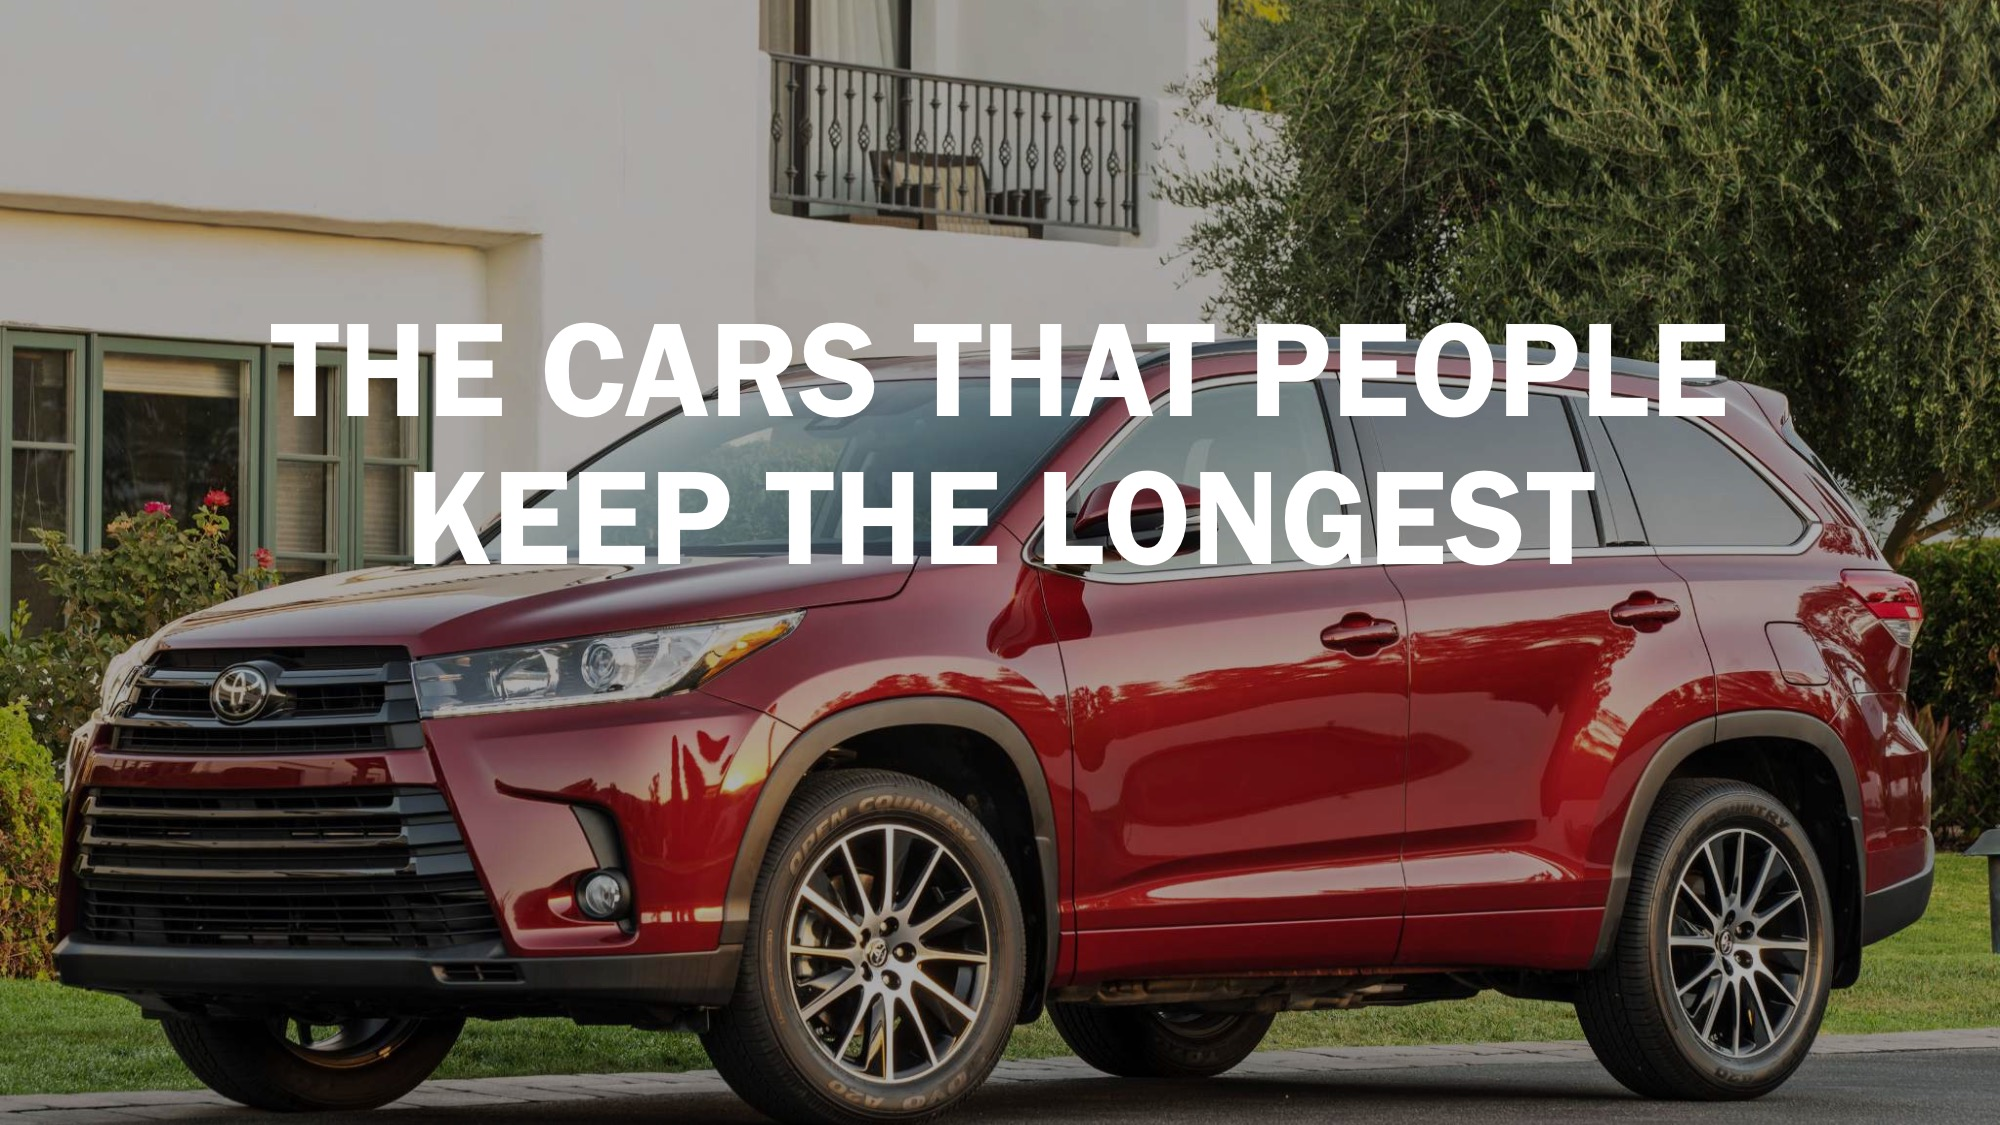 The cars that people keep the longest SFGate